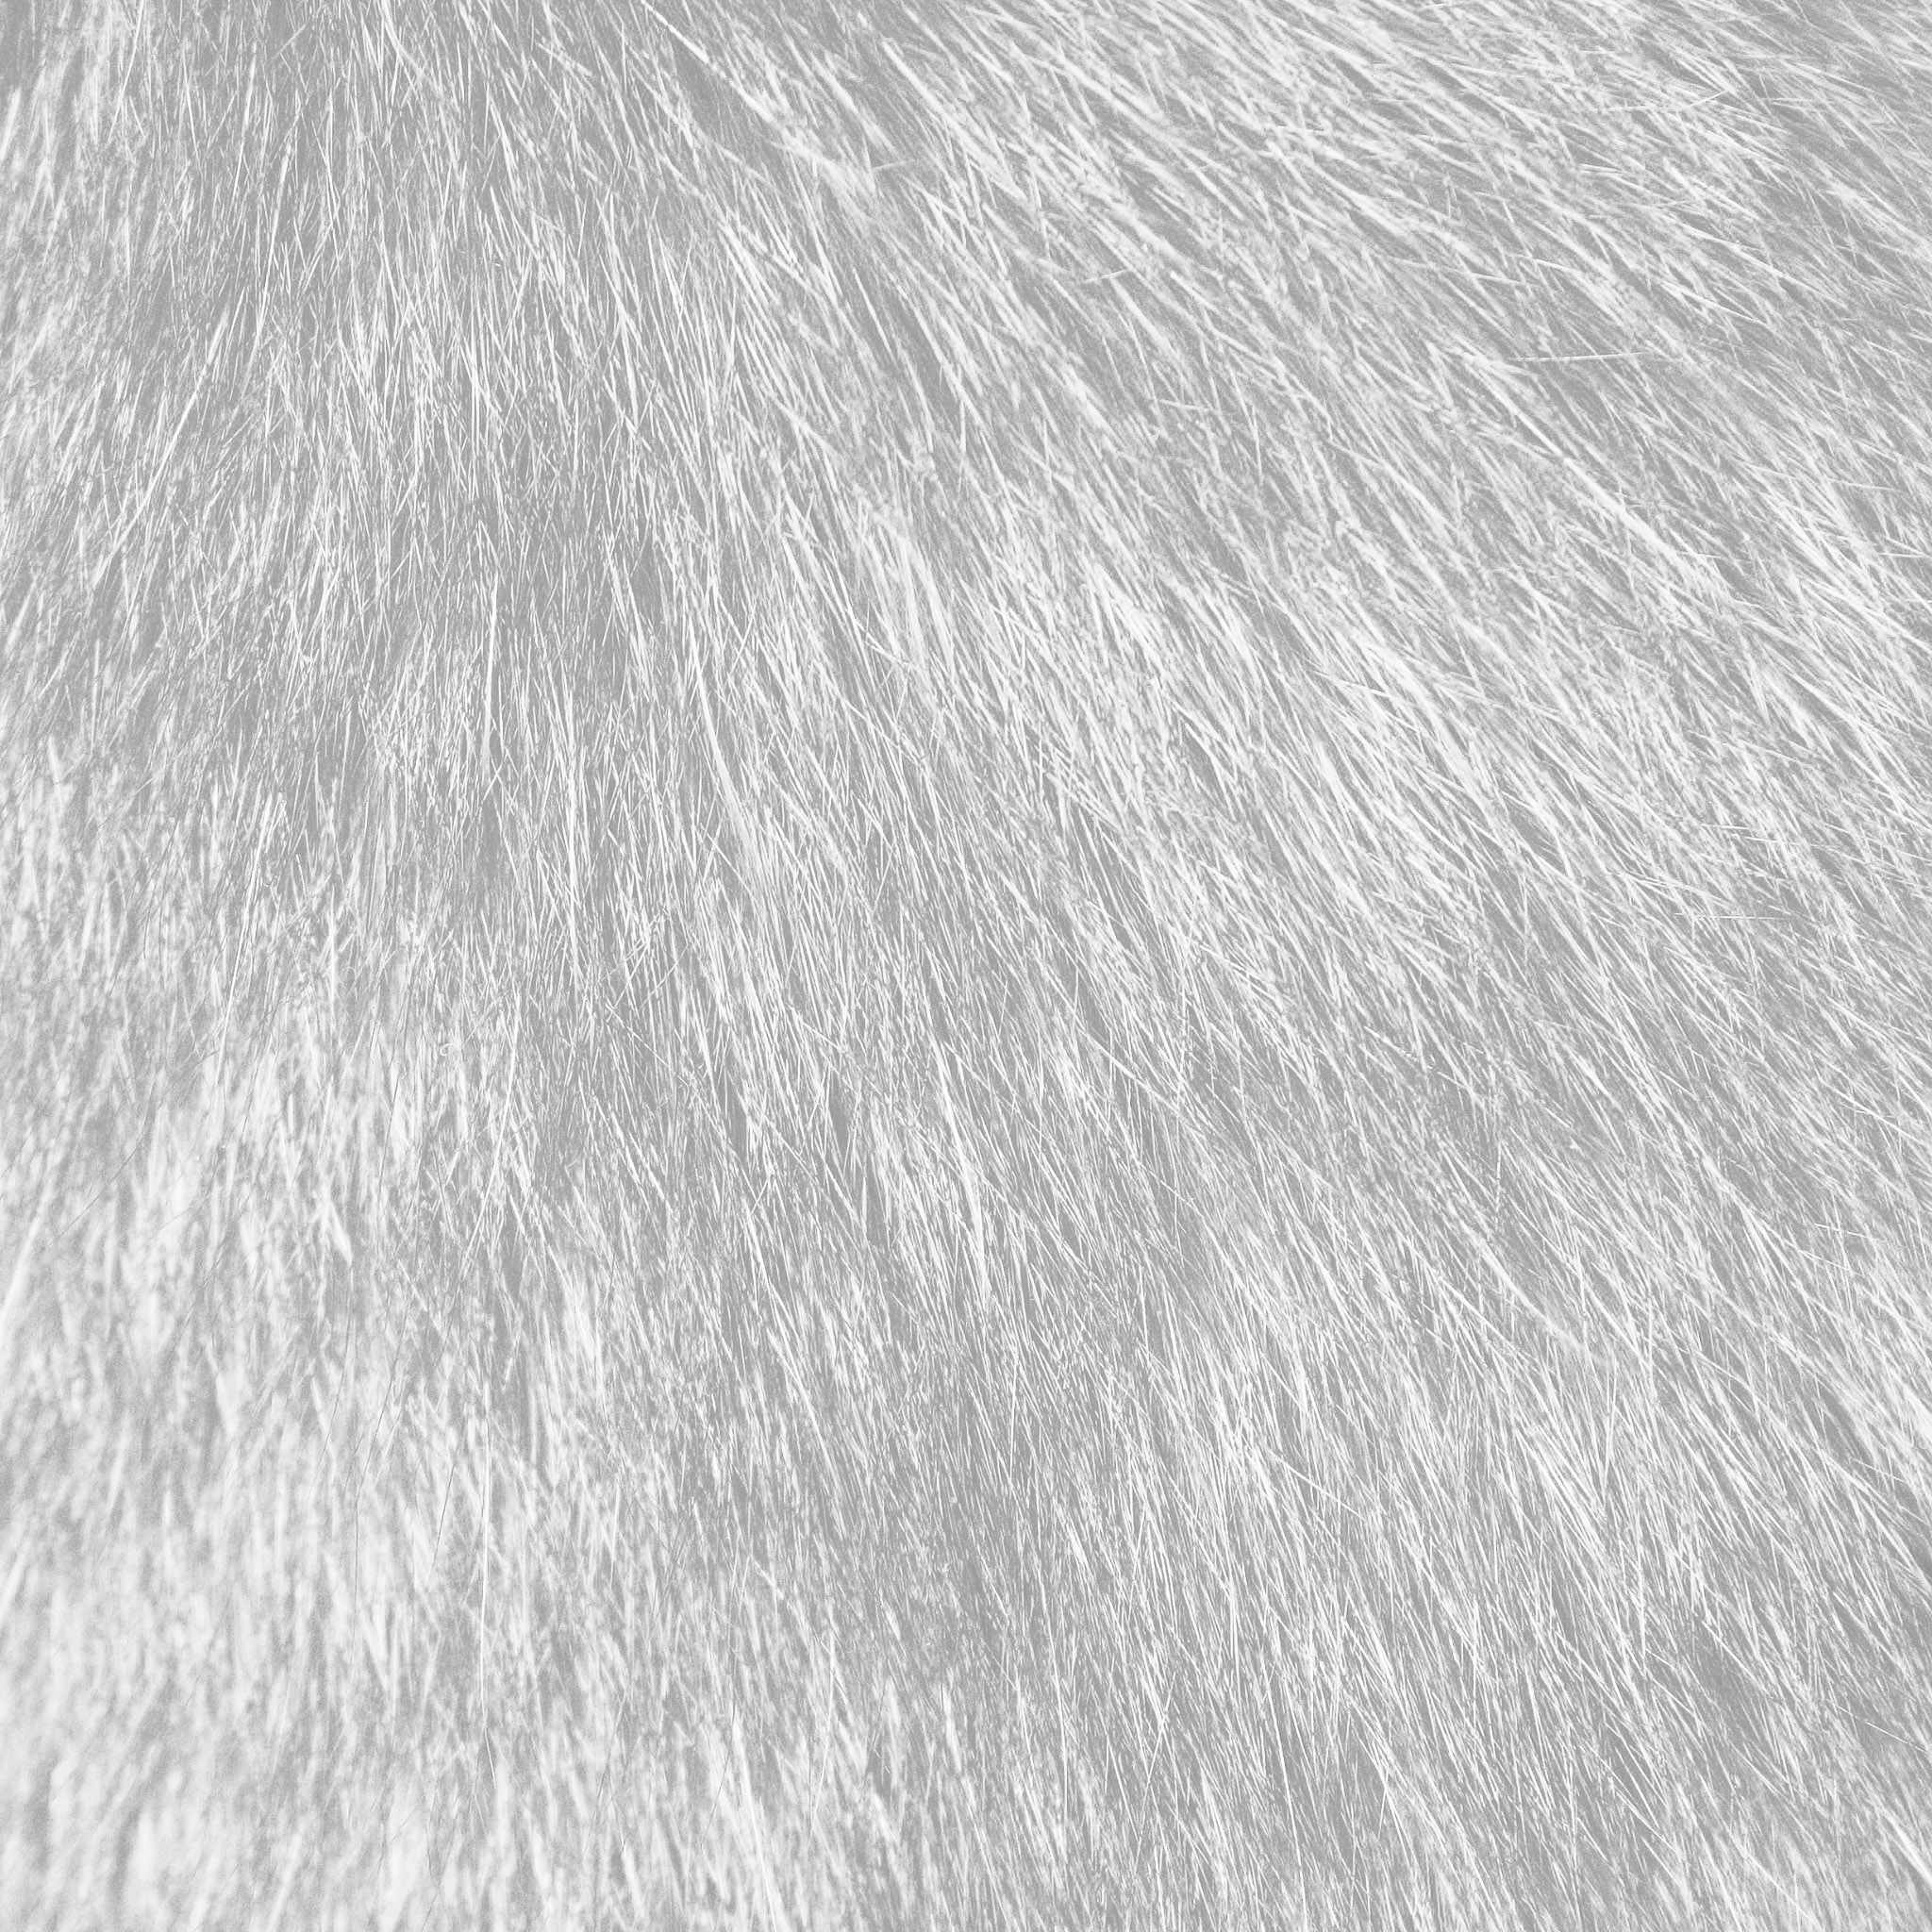 Tabby Cat Fur White Parallax Hd Iphone Ipad Wallpaper